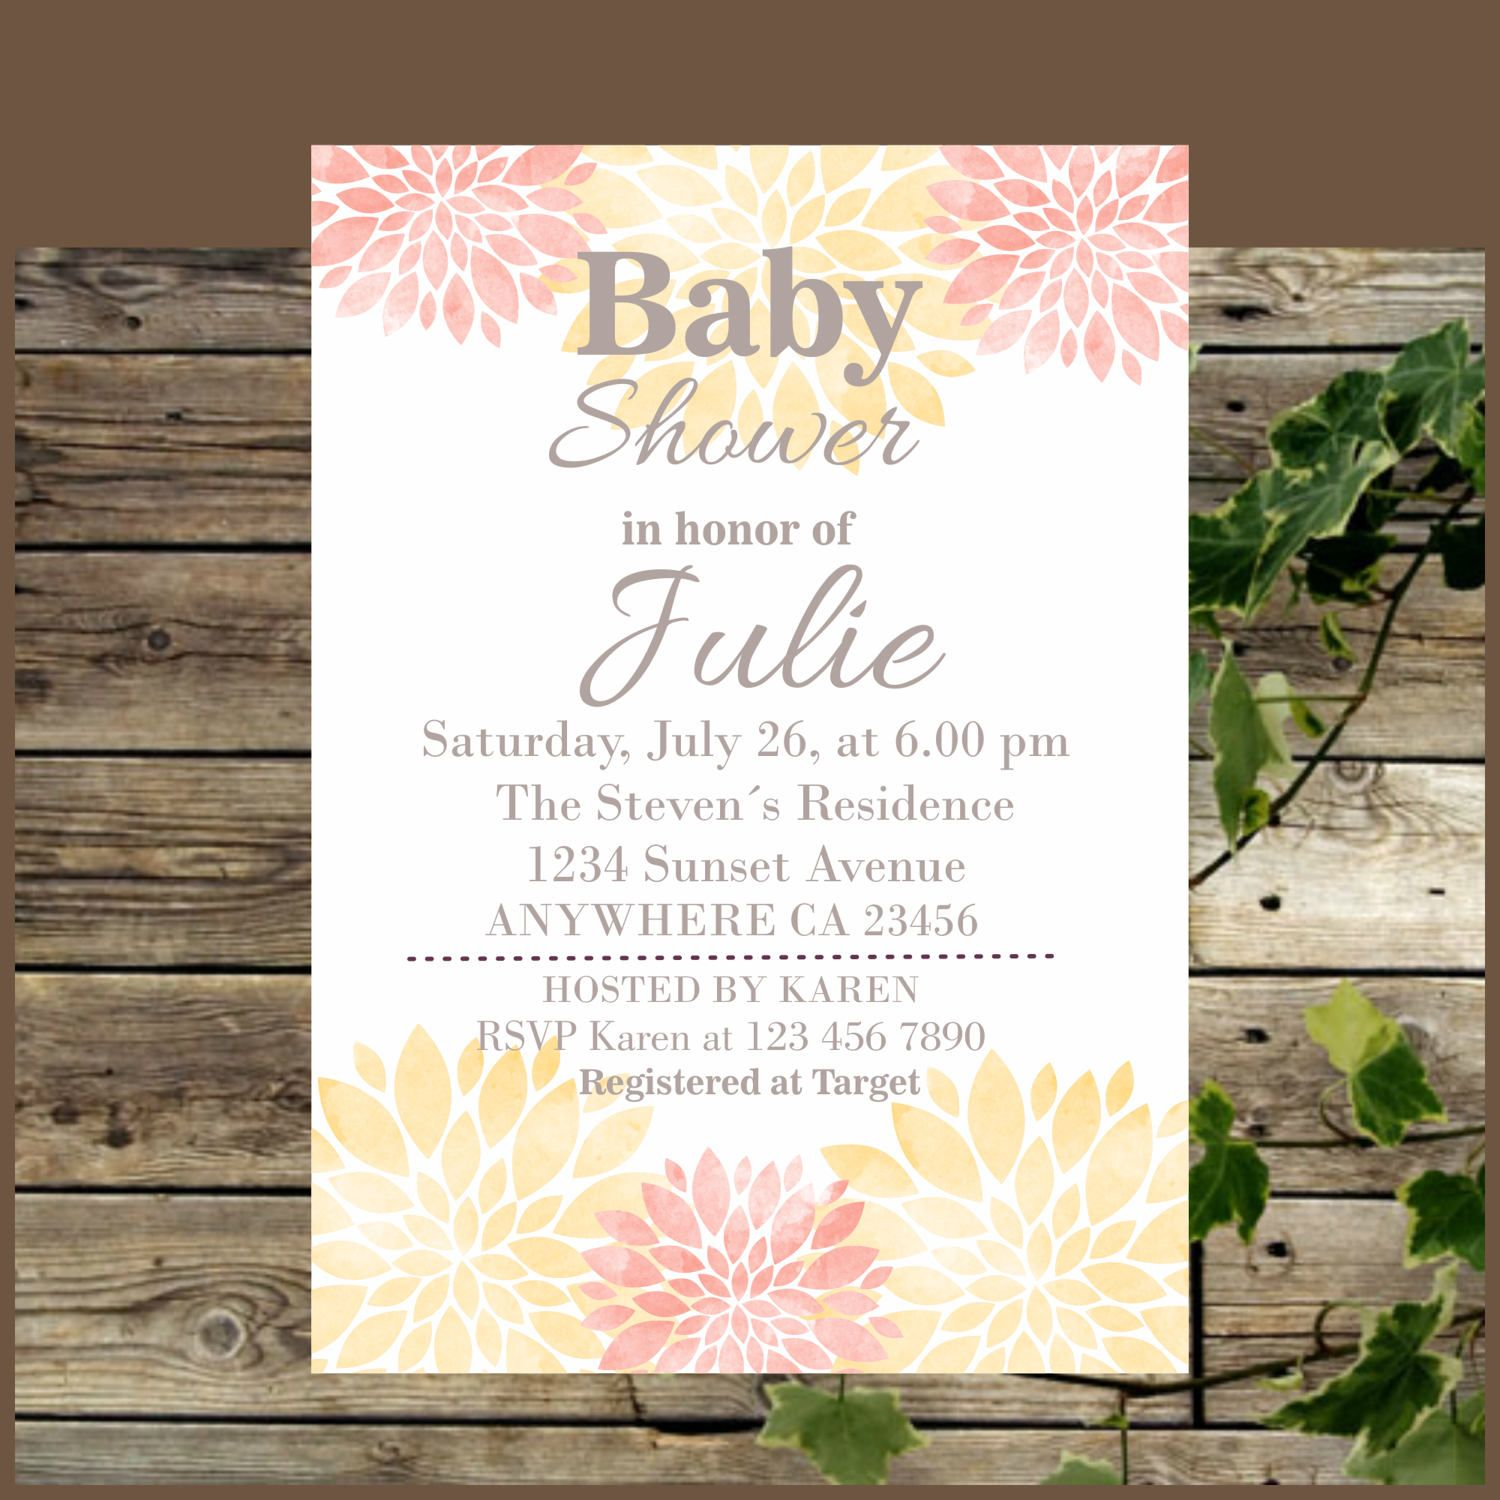 Baby Shower Invitation Printable Floral Coral And Peach Baby Shower